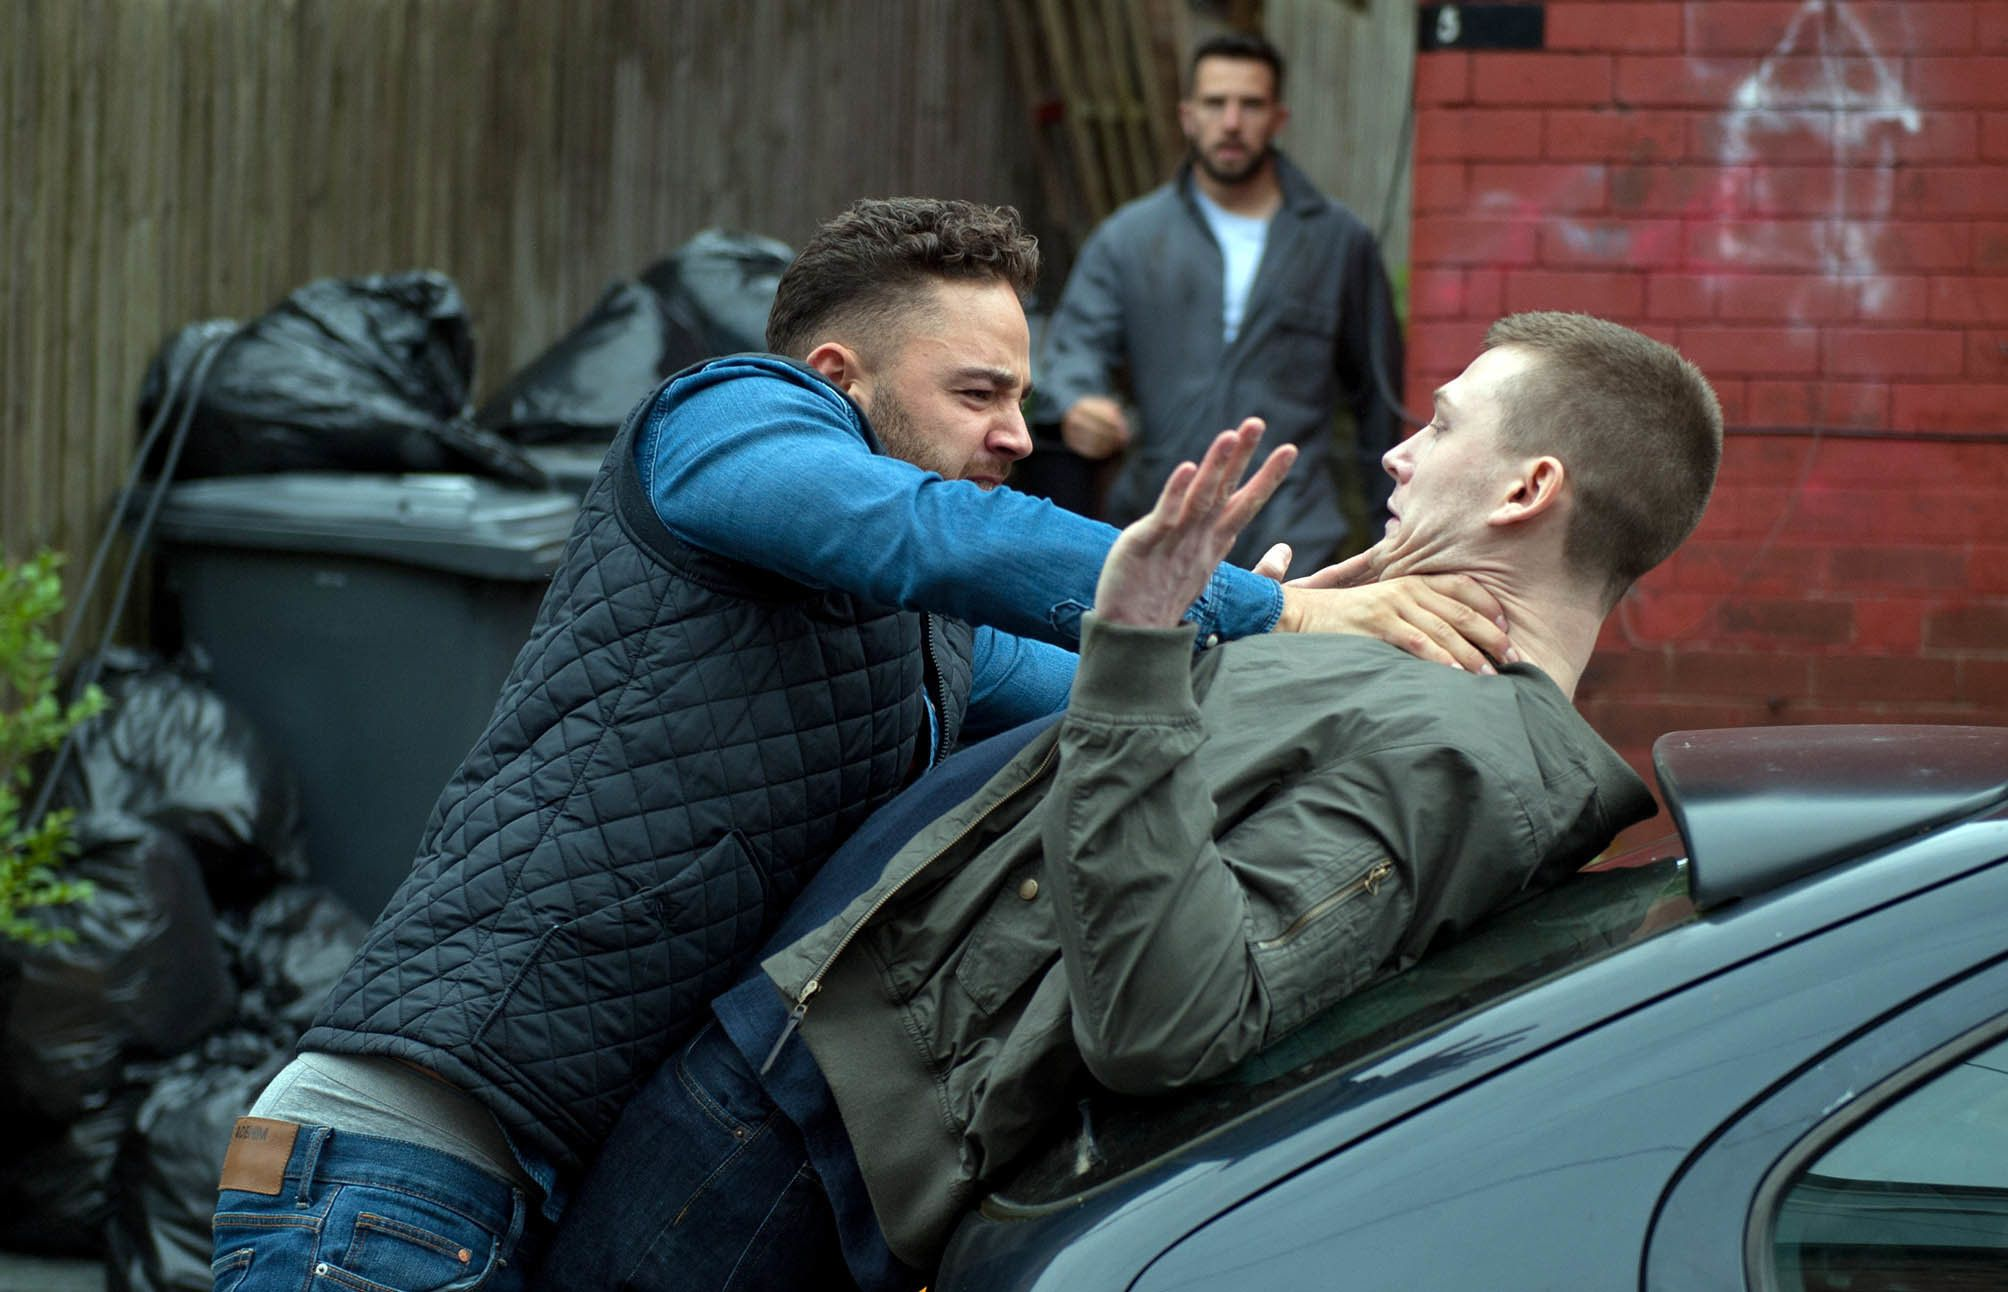 'Emmerdale' Spoiler! Adam Is Out For Blood Over Sister Holly's